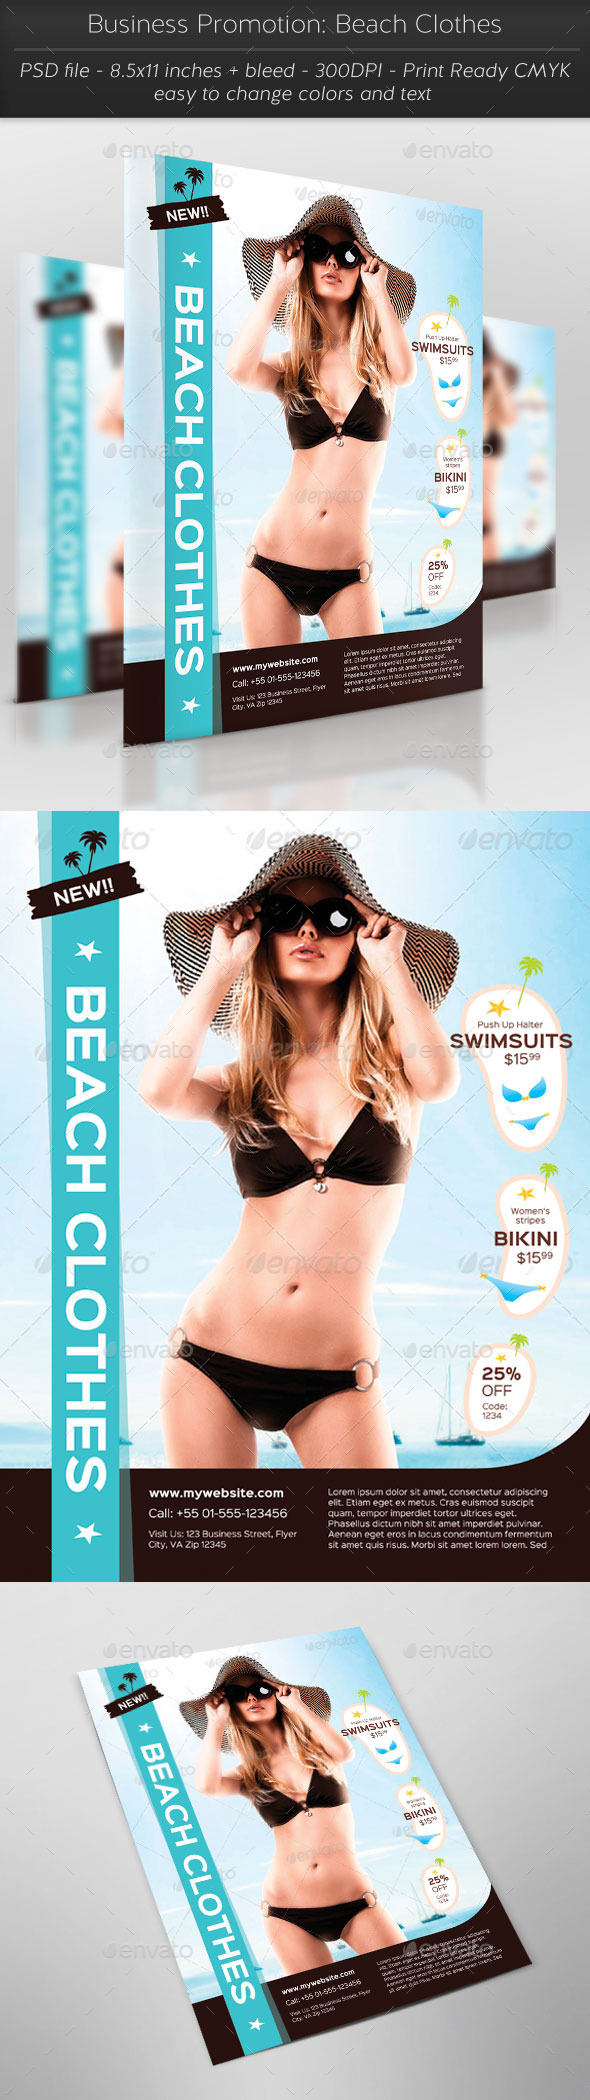 GraphicRiver Business Promotion Beach Clothes 11885637